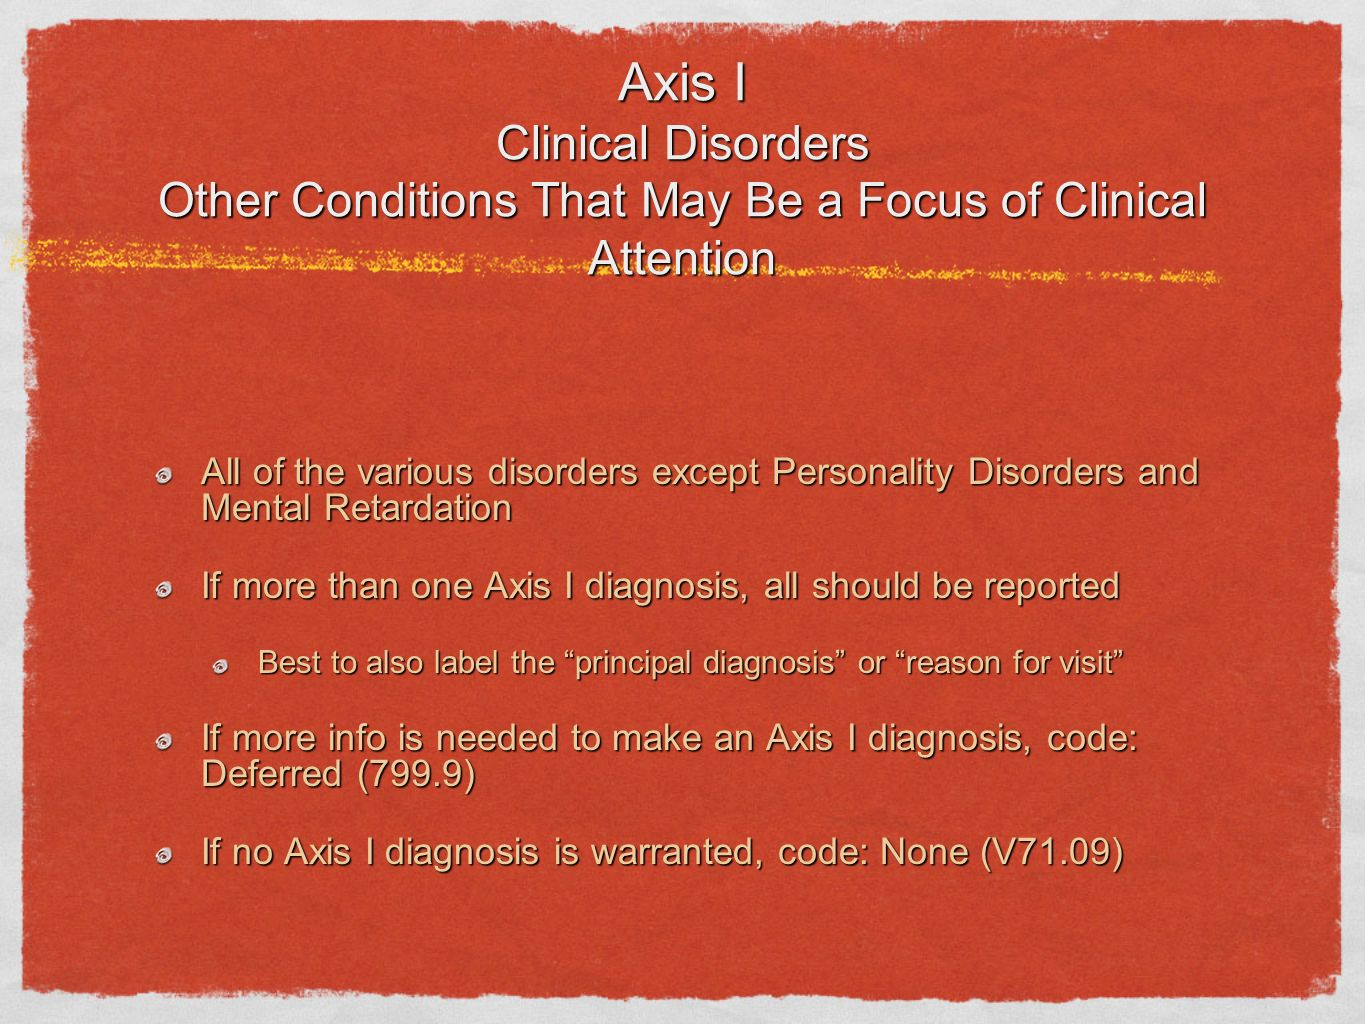 Axis I Clinical Disorders Other Conditions That May Be a Focus of Clinical Attention